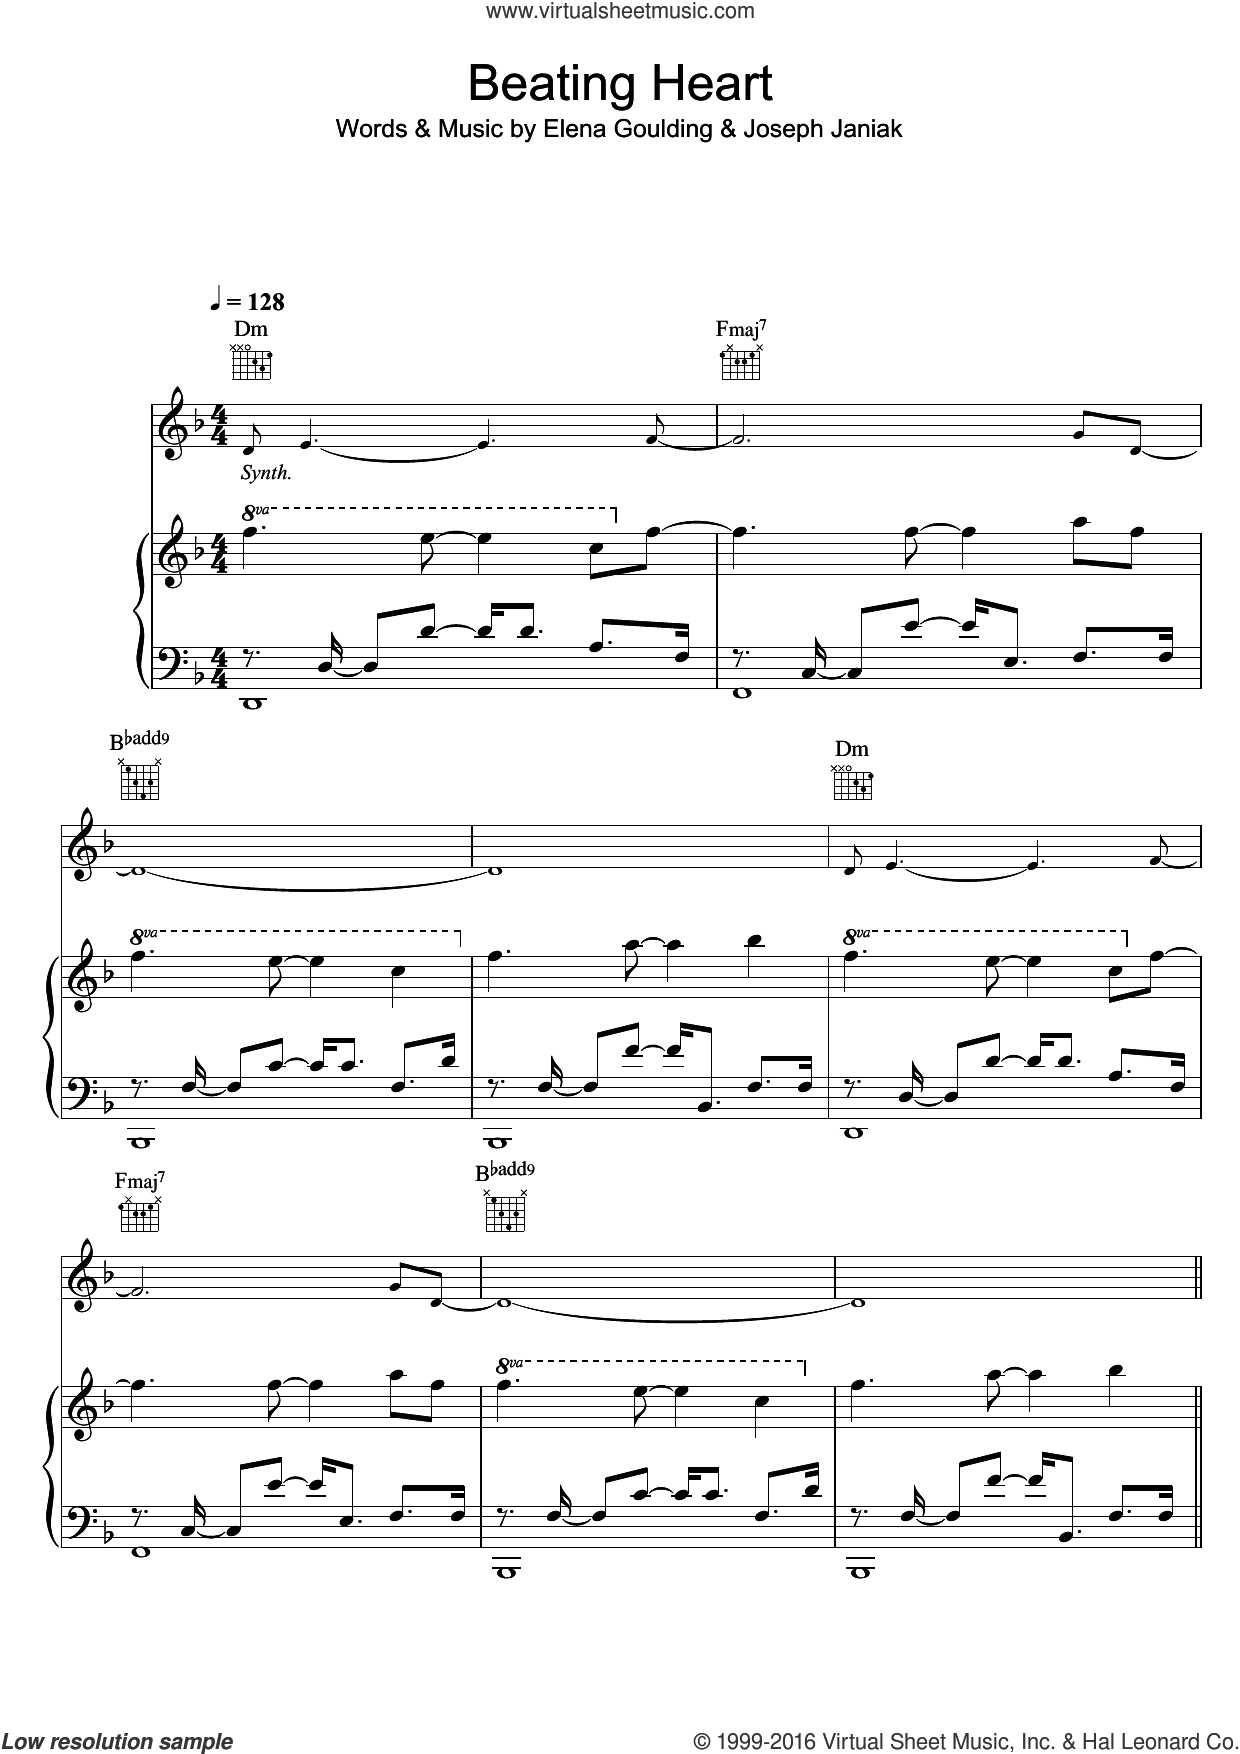 Beating Heart sheet music for voice, piano or guitar by Ellie Goulding and Joseph Janiak, intermediate skill level